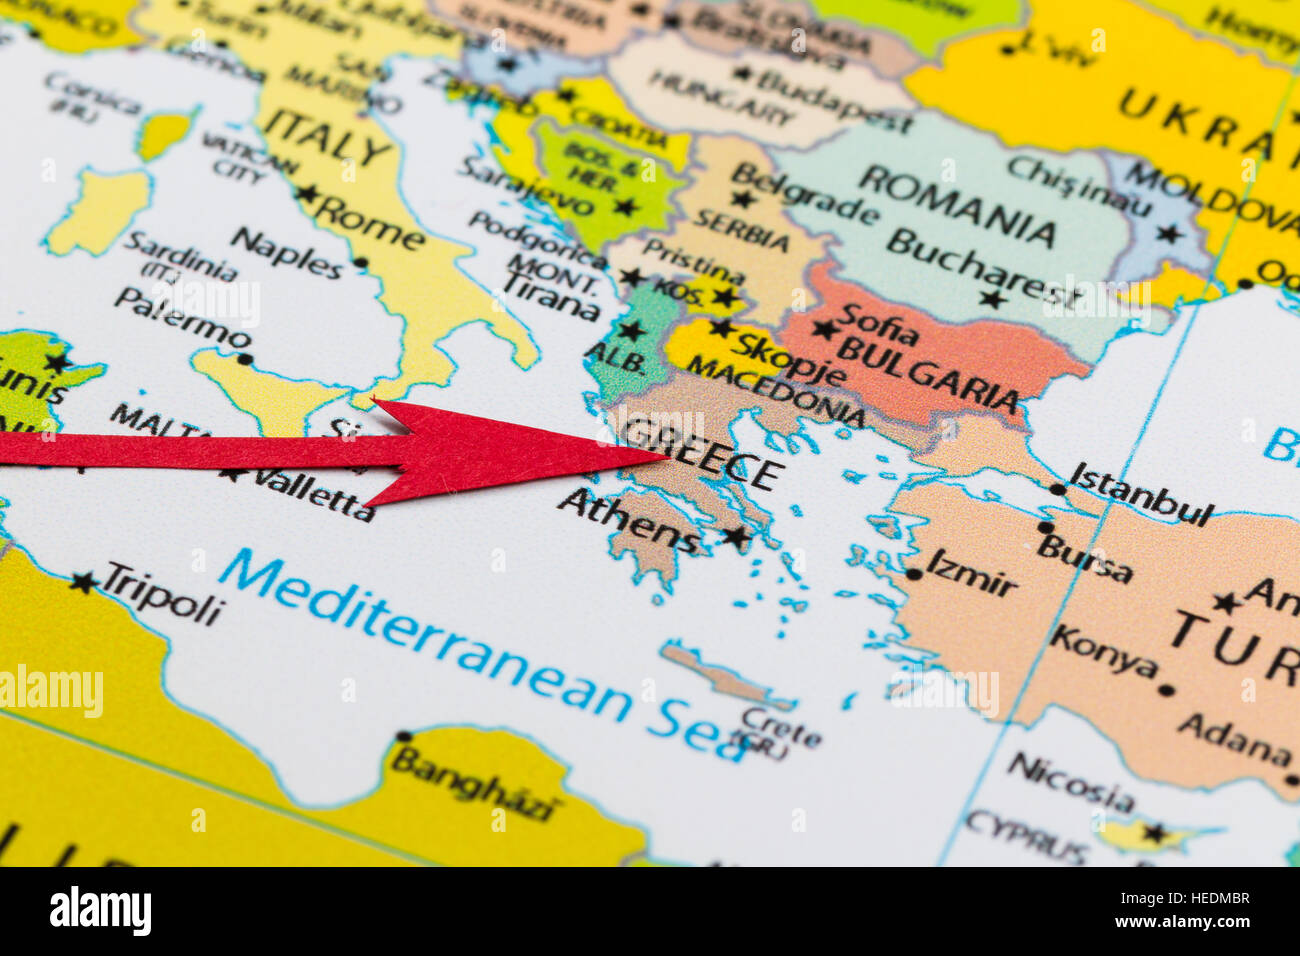 Red Arrow Pointing Greece On The Map Of Europe Continent Stock Photo